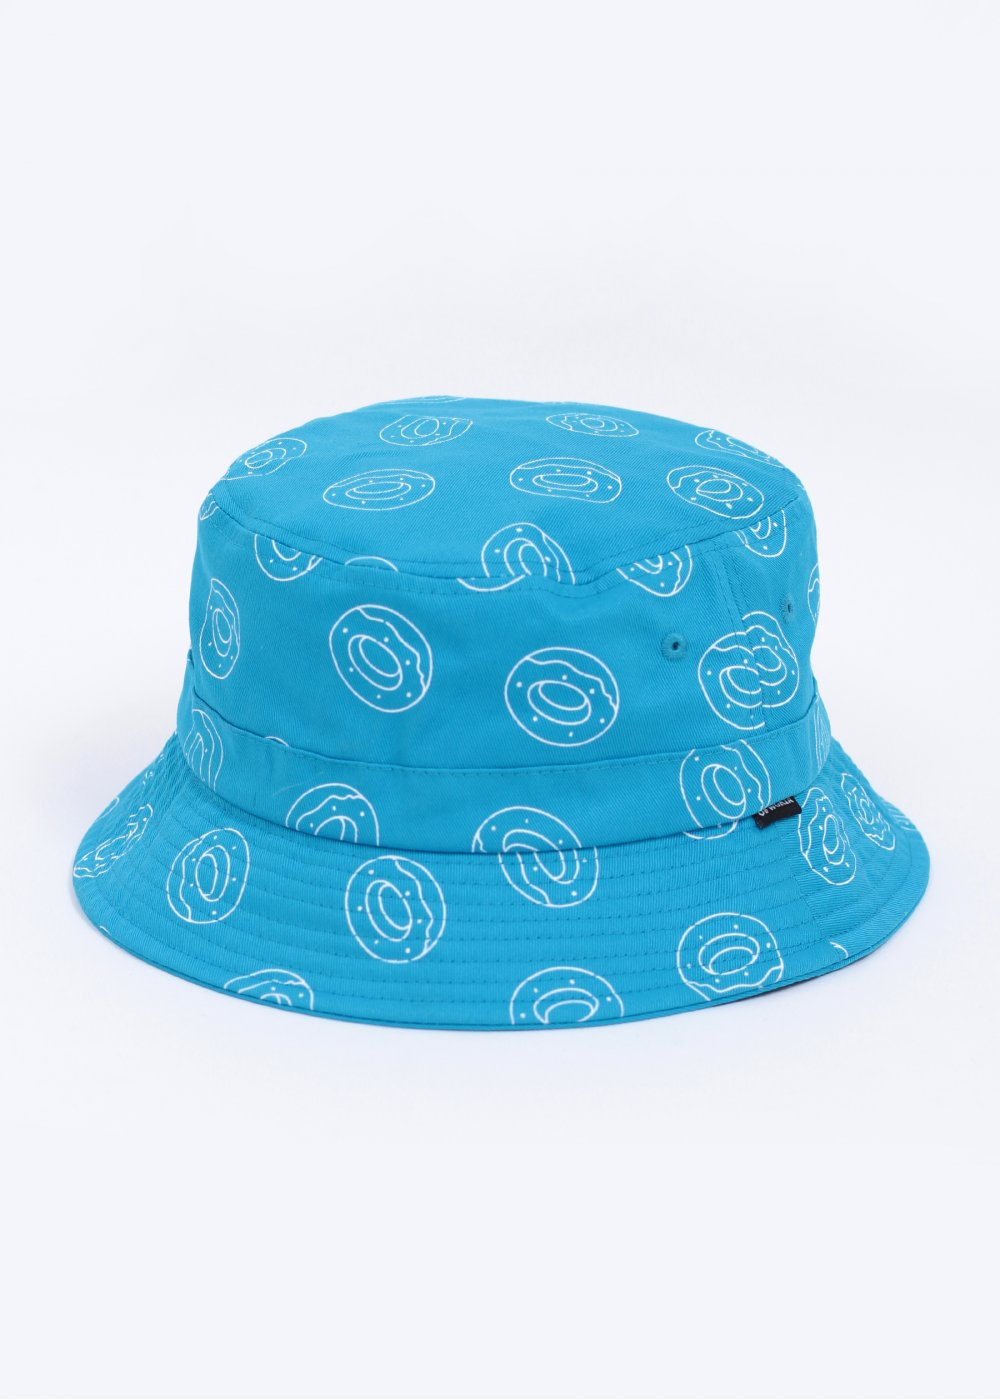 095b9e8a2bfd1 Odd Future Donut Bucket Hat - Turquoise